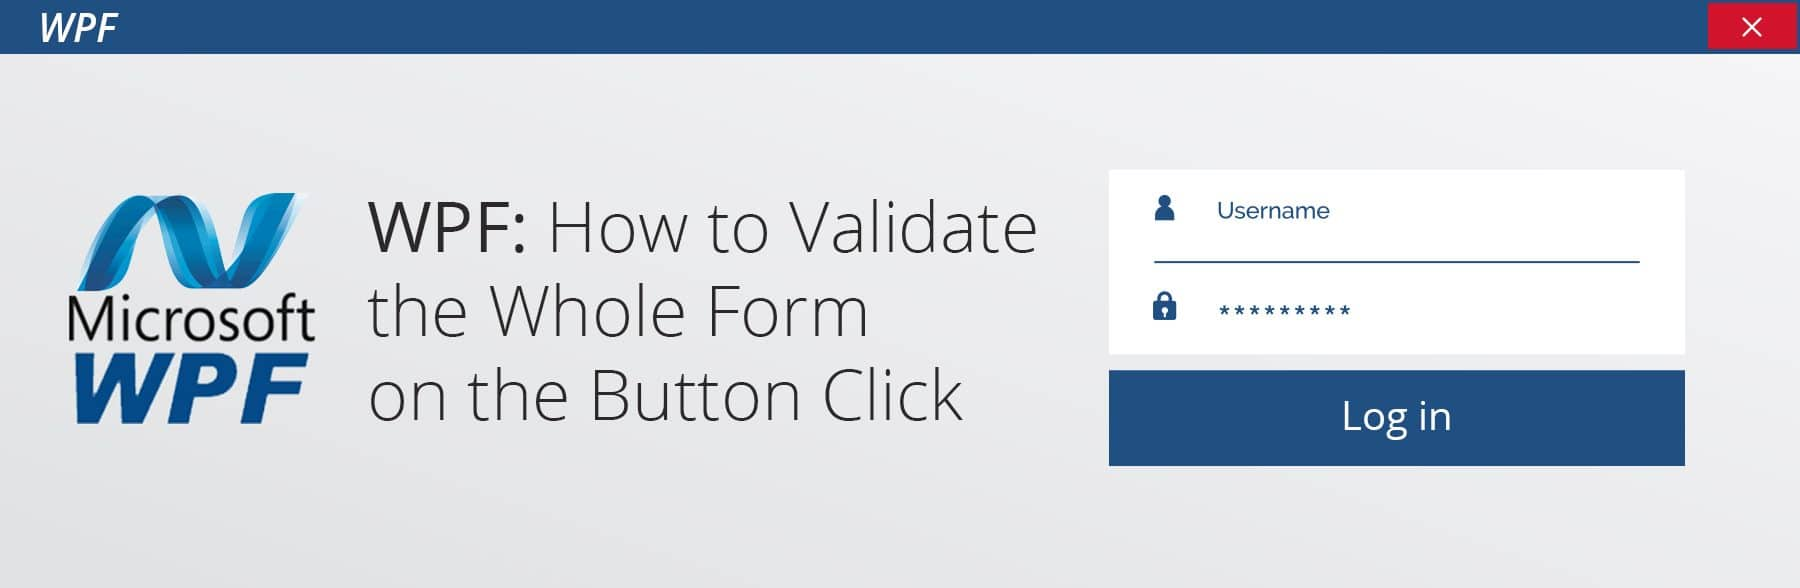 WPF Validation: How to Validate the Whole Form on the Button Click